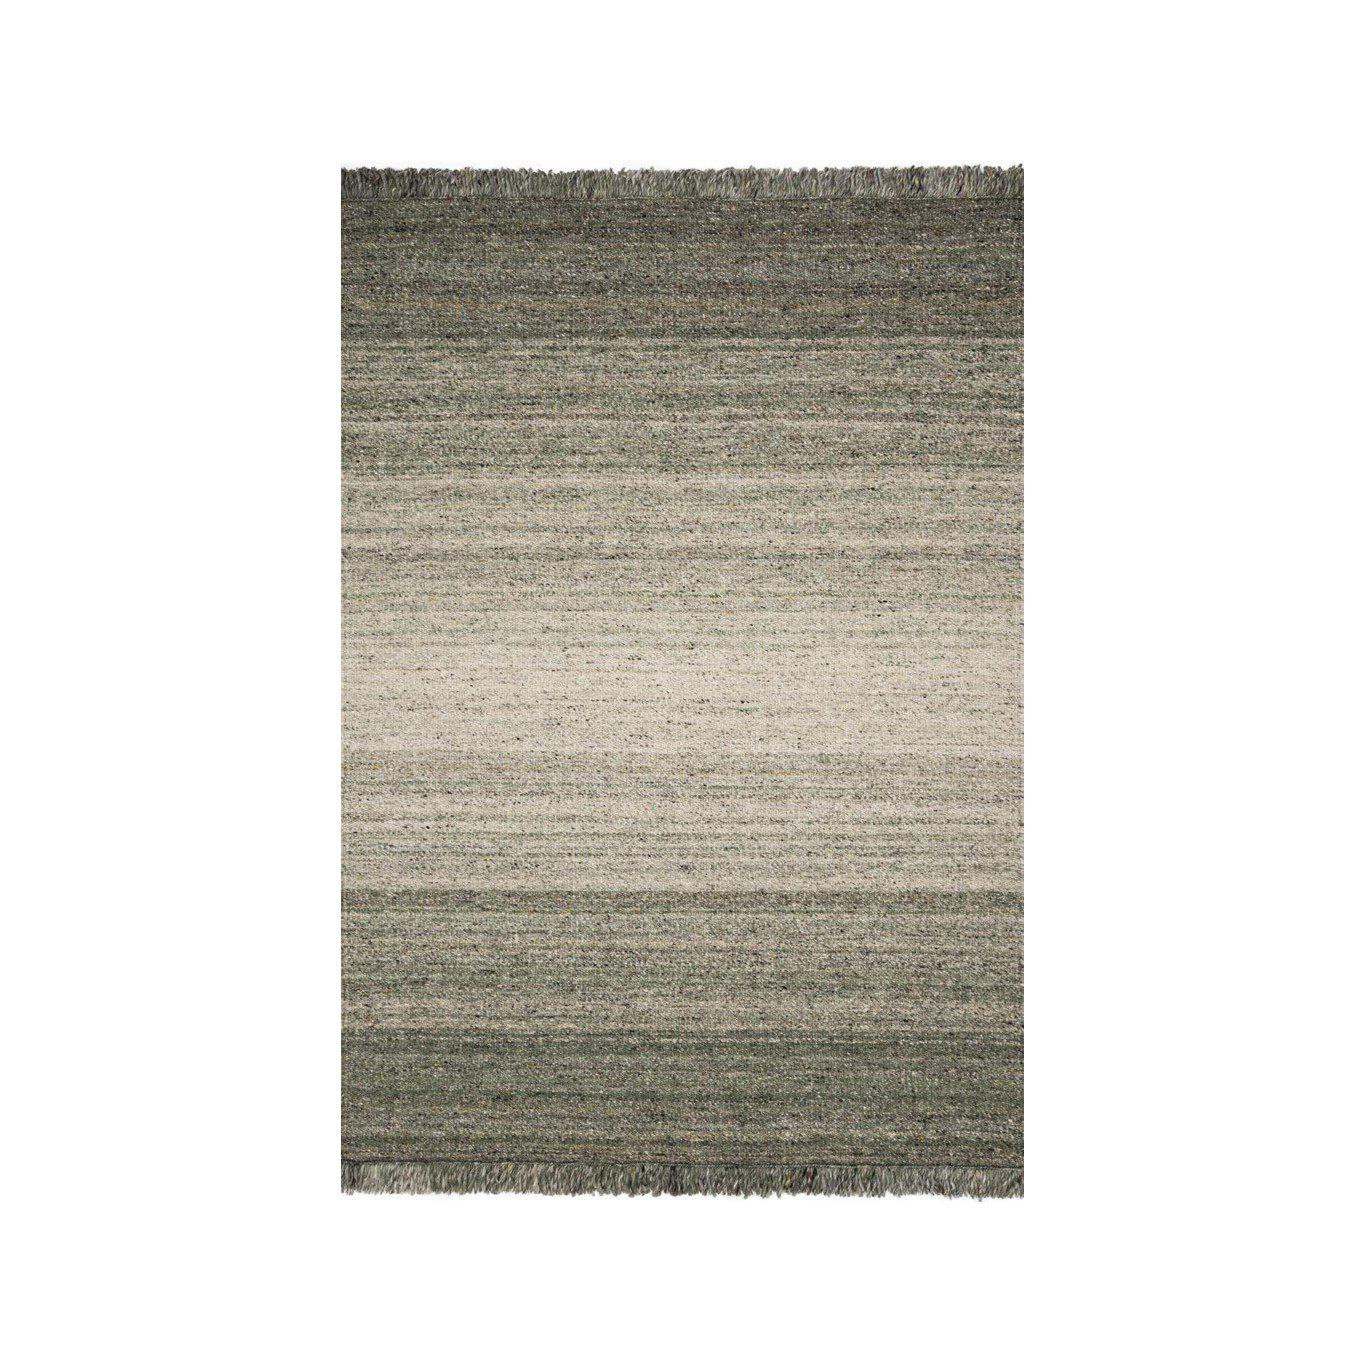 Joanna Gaines Phillip Rug Collection - PK-01 Olive-Loloi Rugs-Blue Hand Home